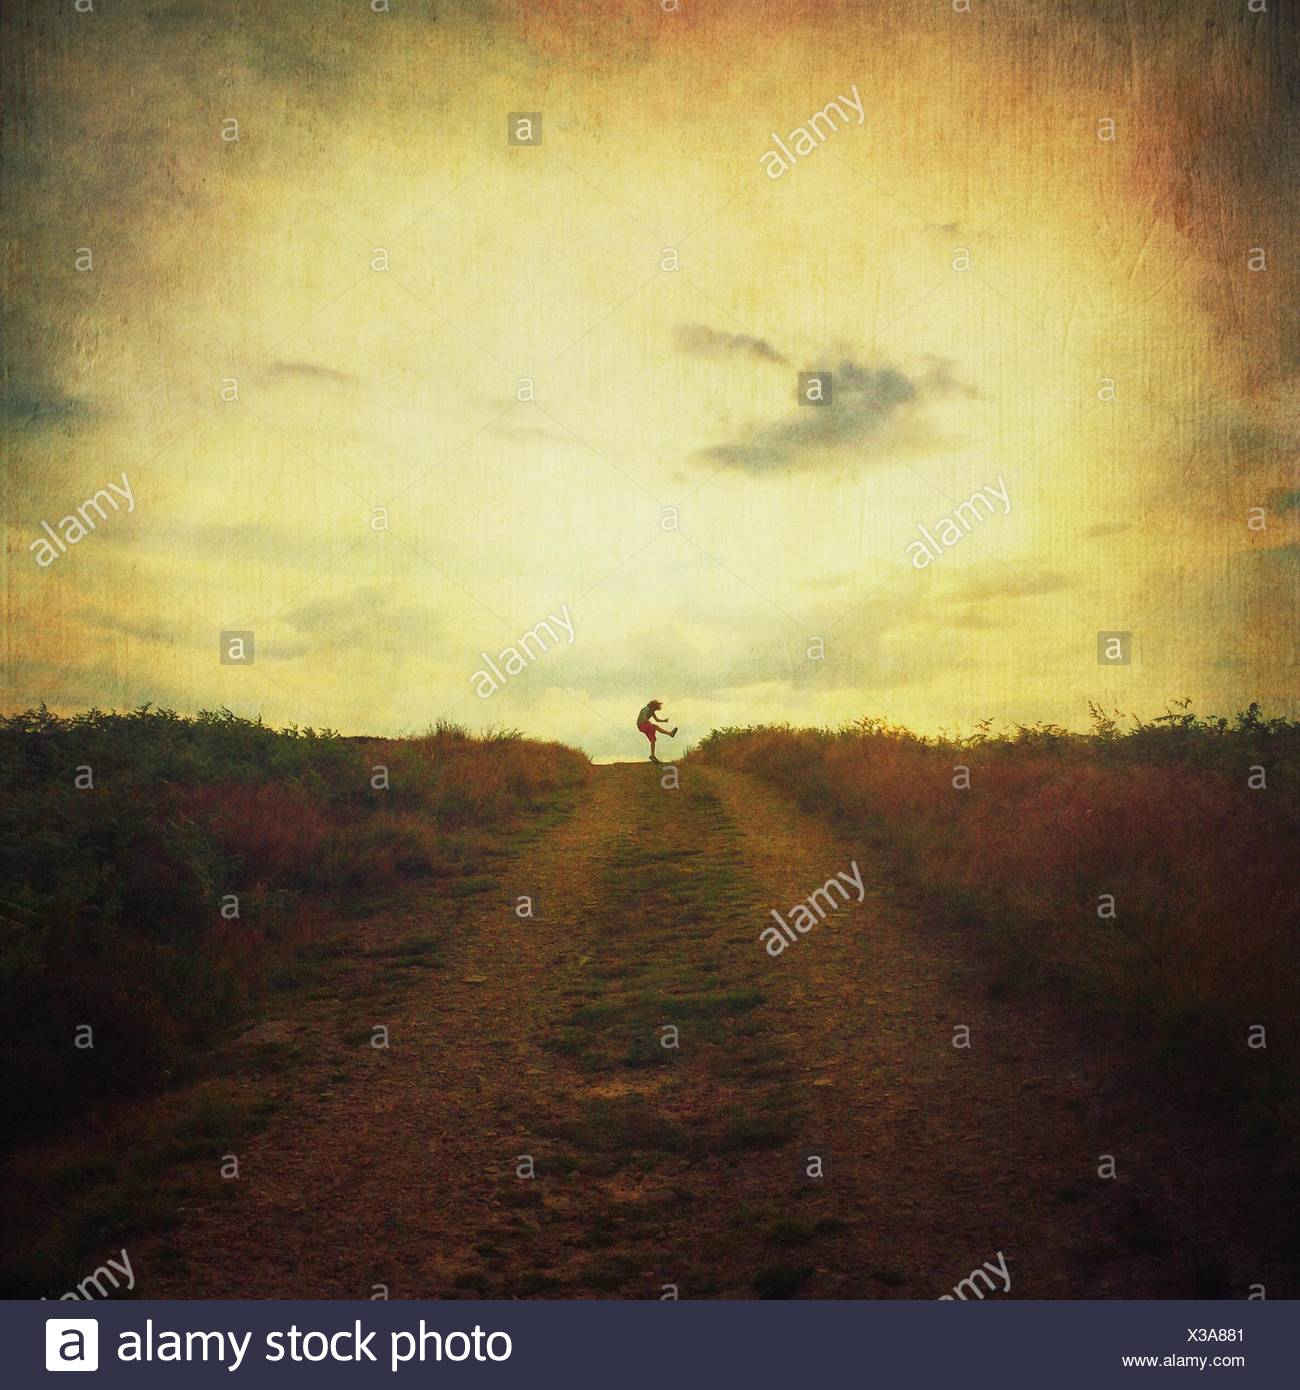 Distant View Of Person Jumping On Dirt Road Against Sky - Stock Image